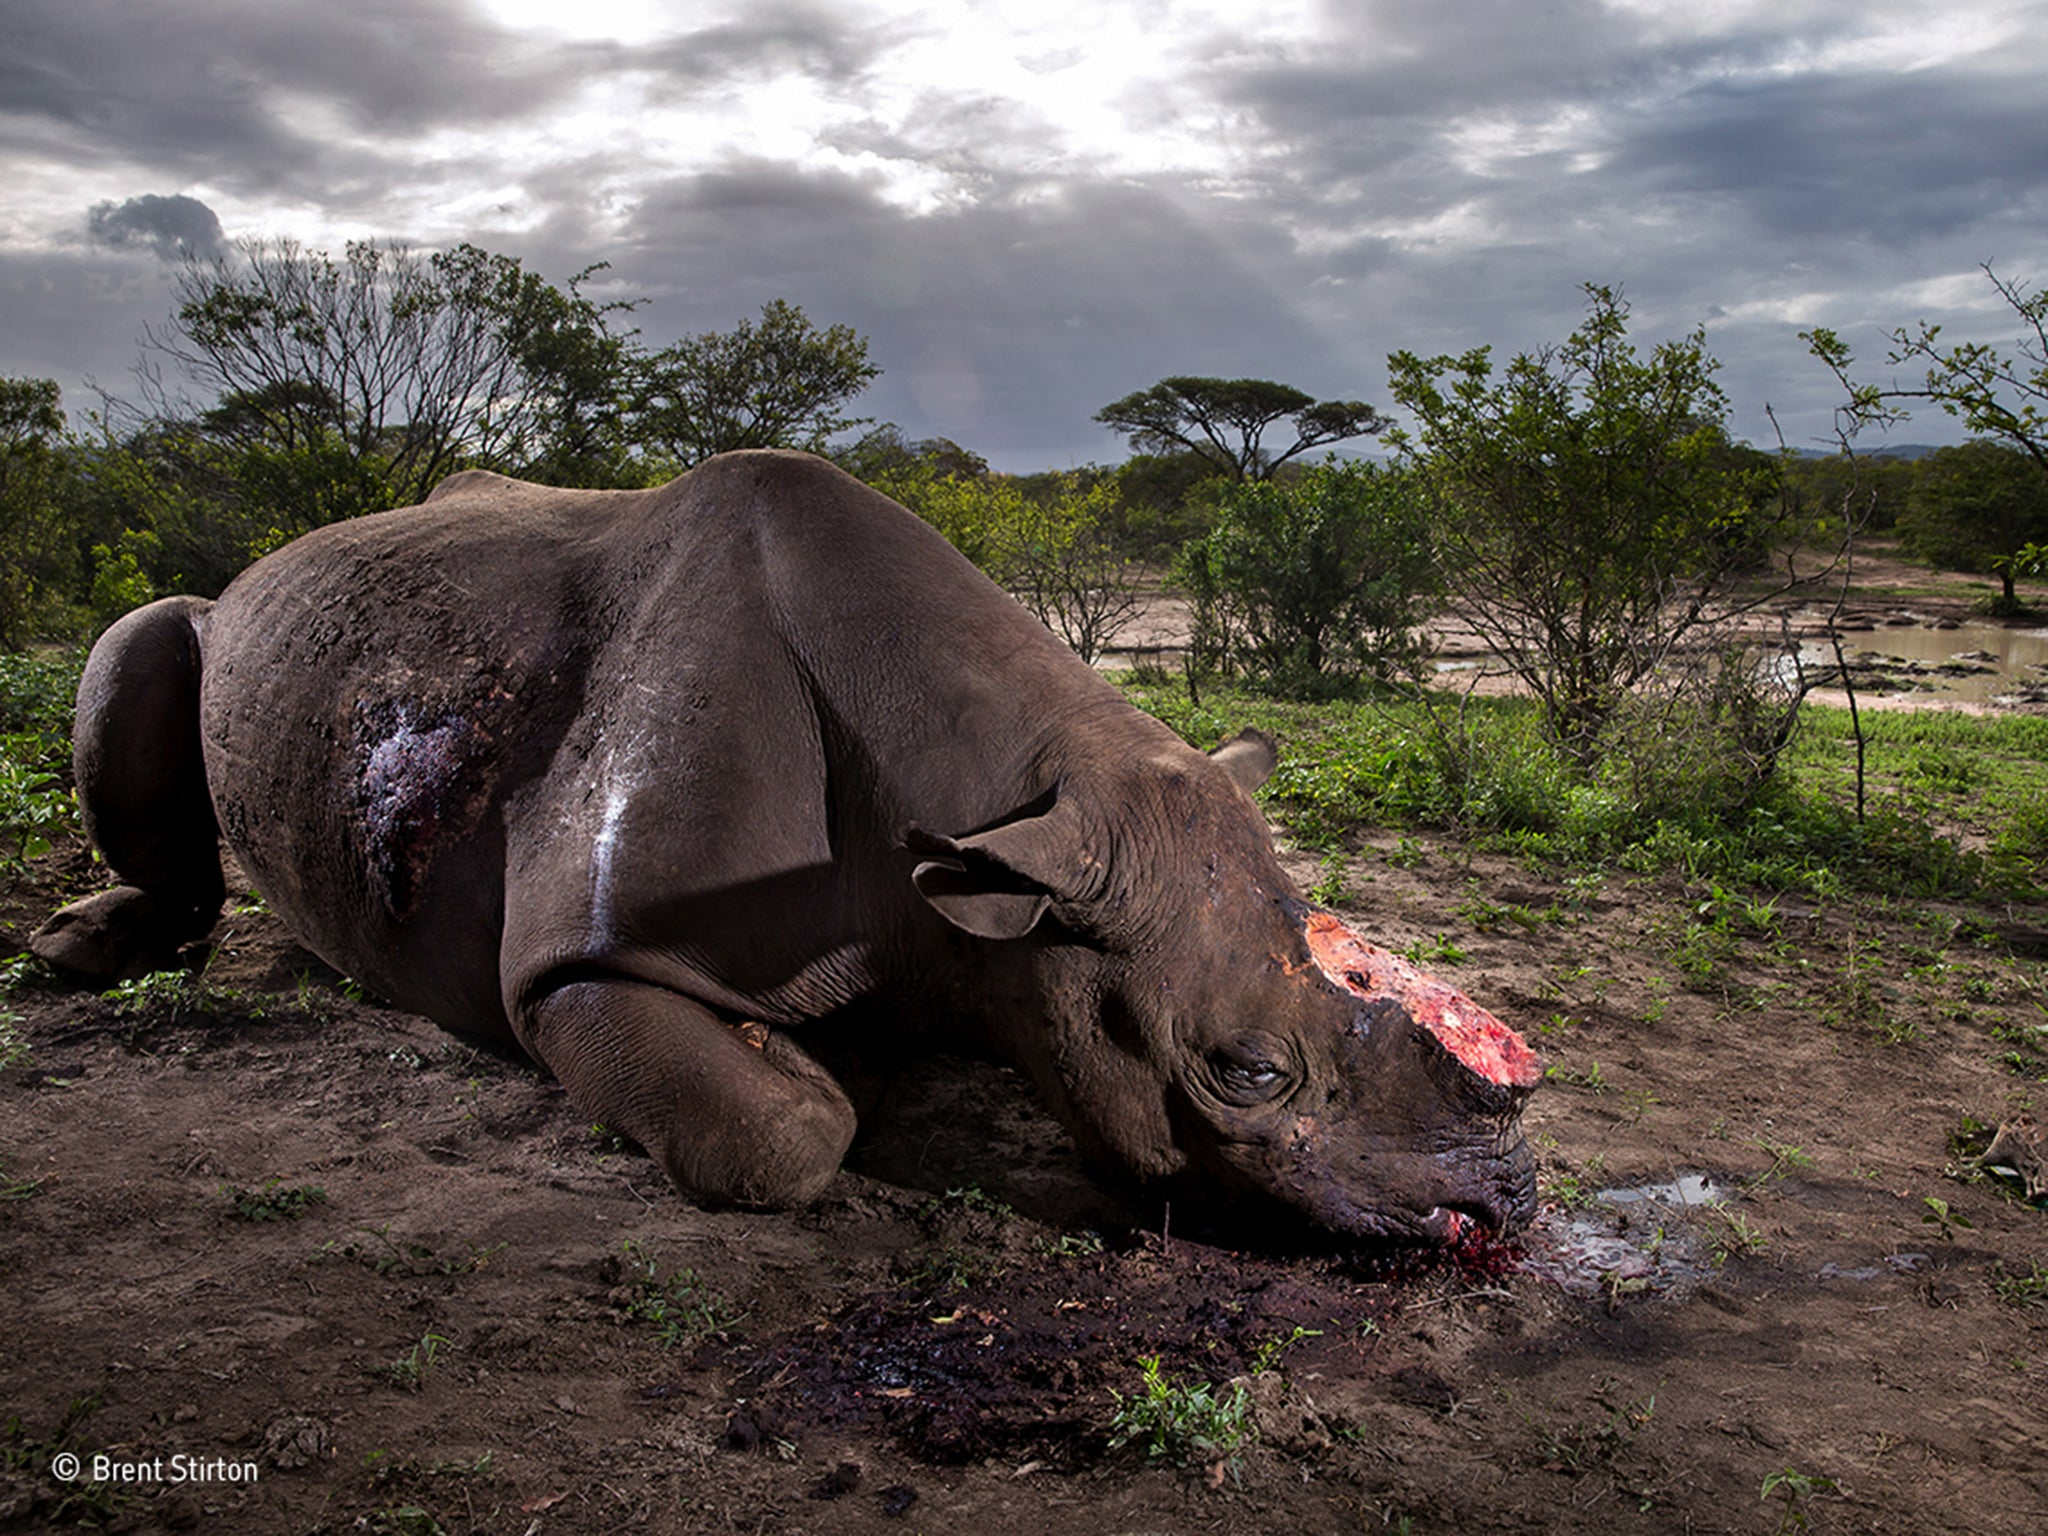 Shocking image of black rhino killed by poachers wins